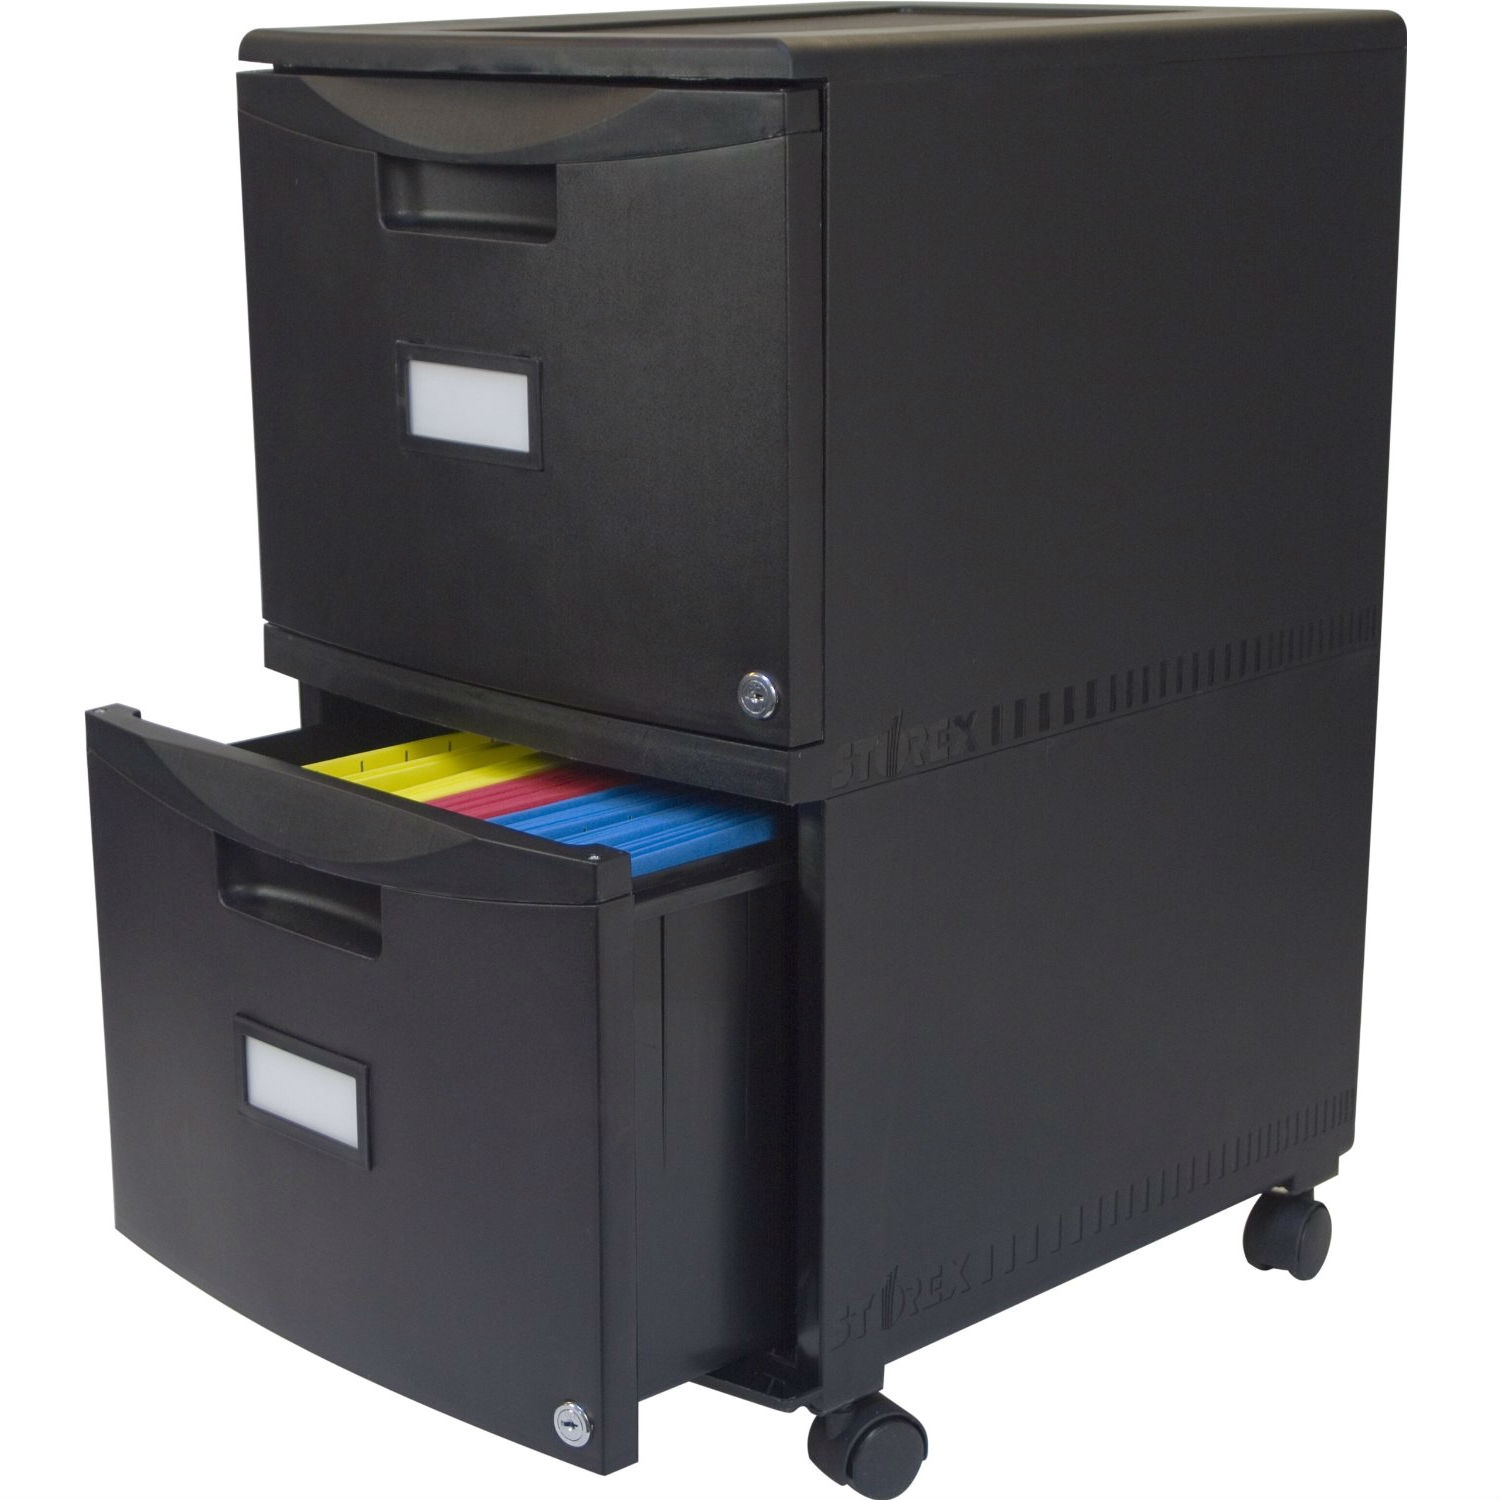 Black 2 Drawer Locking Letter Legal Size File Cabinet With Casters Wheels Fastfurnishings